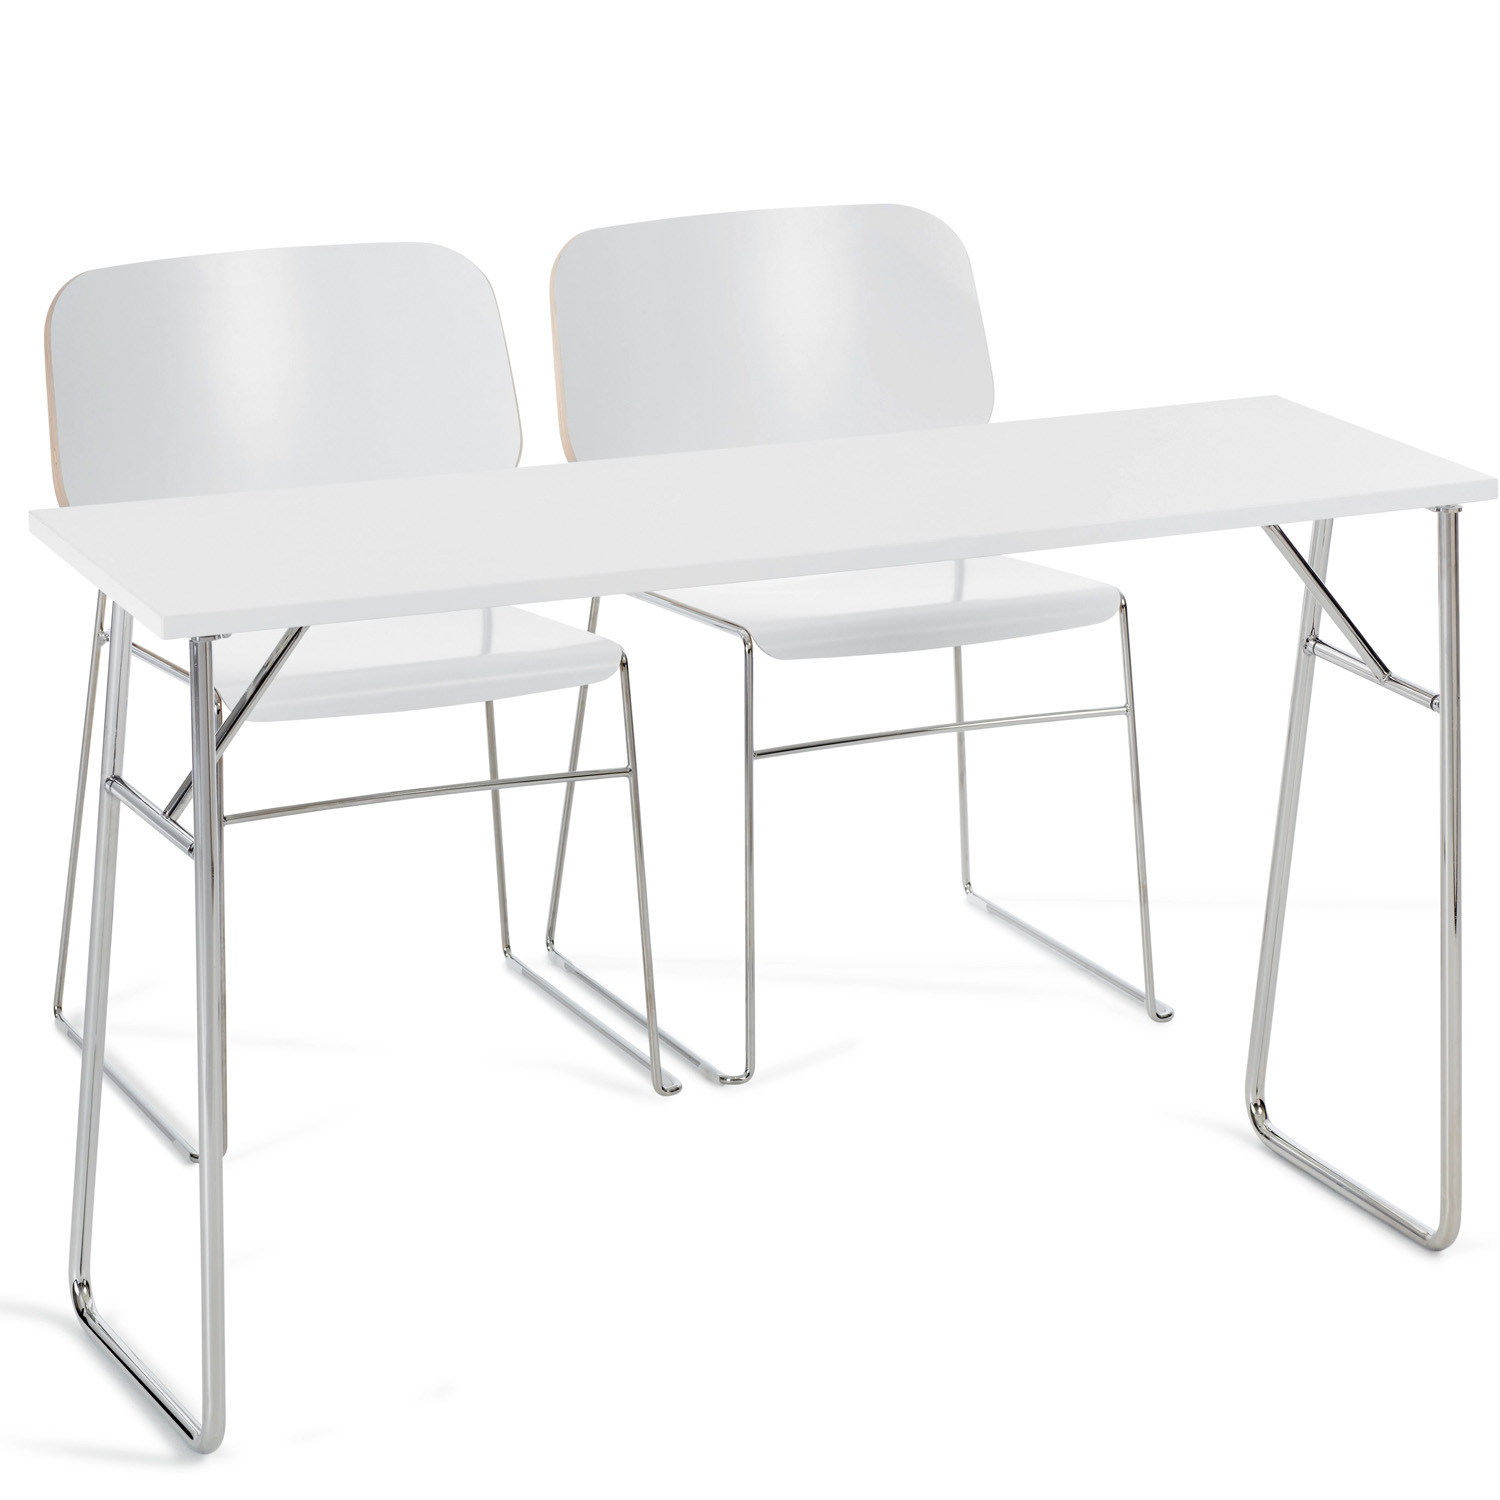 Offecct Lite Office Table